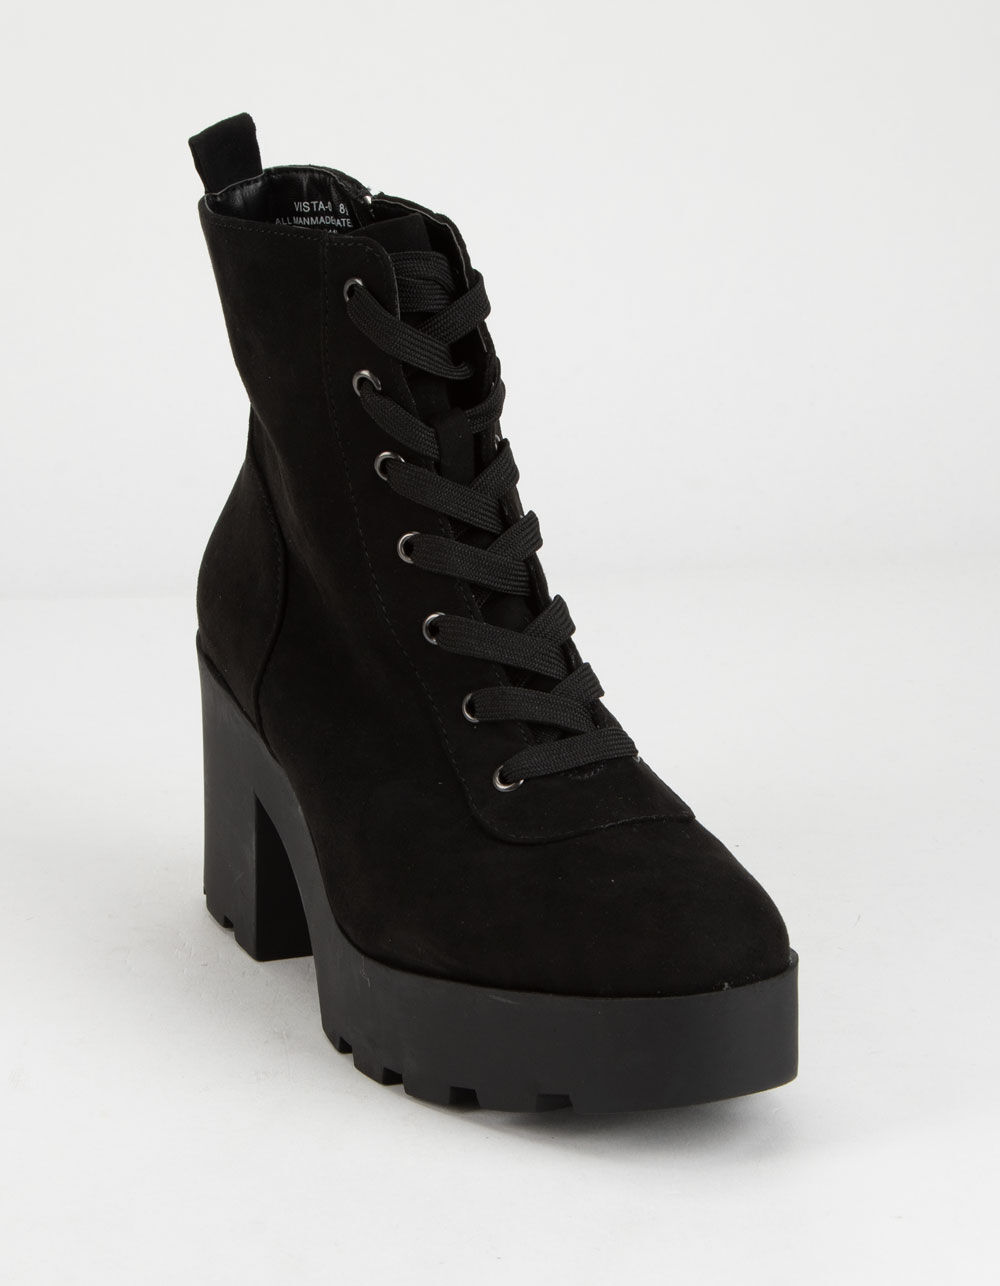 BAMBOO Chunky Lug Sole Lace Up Black Boots